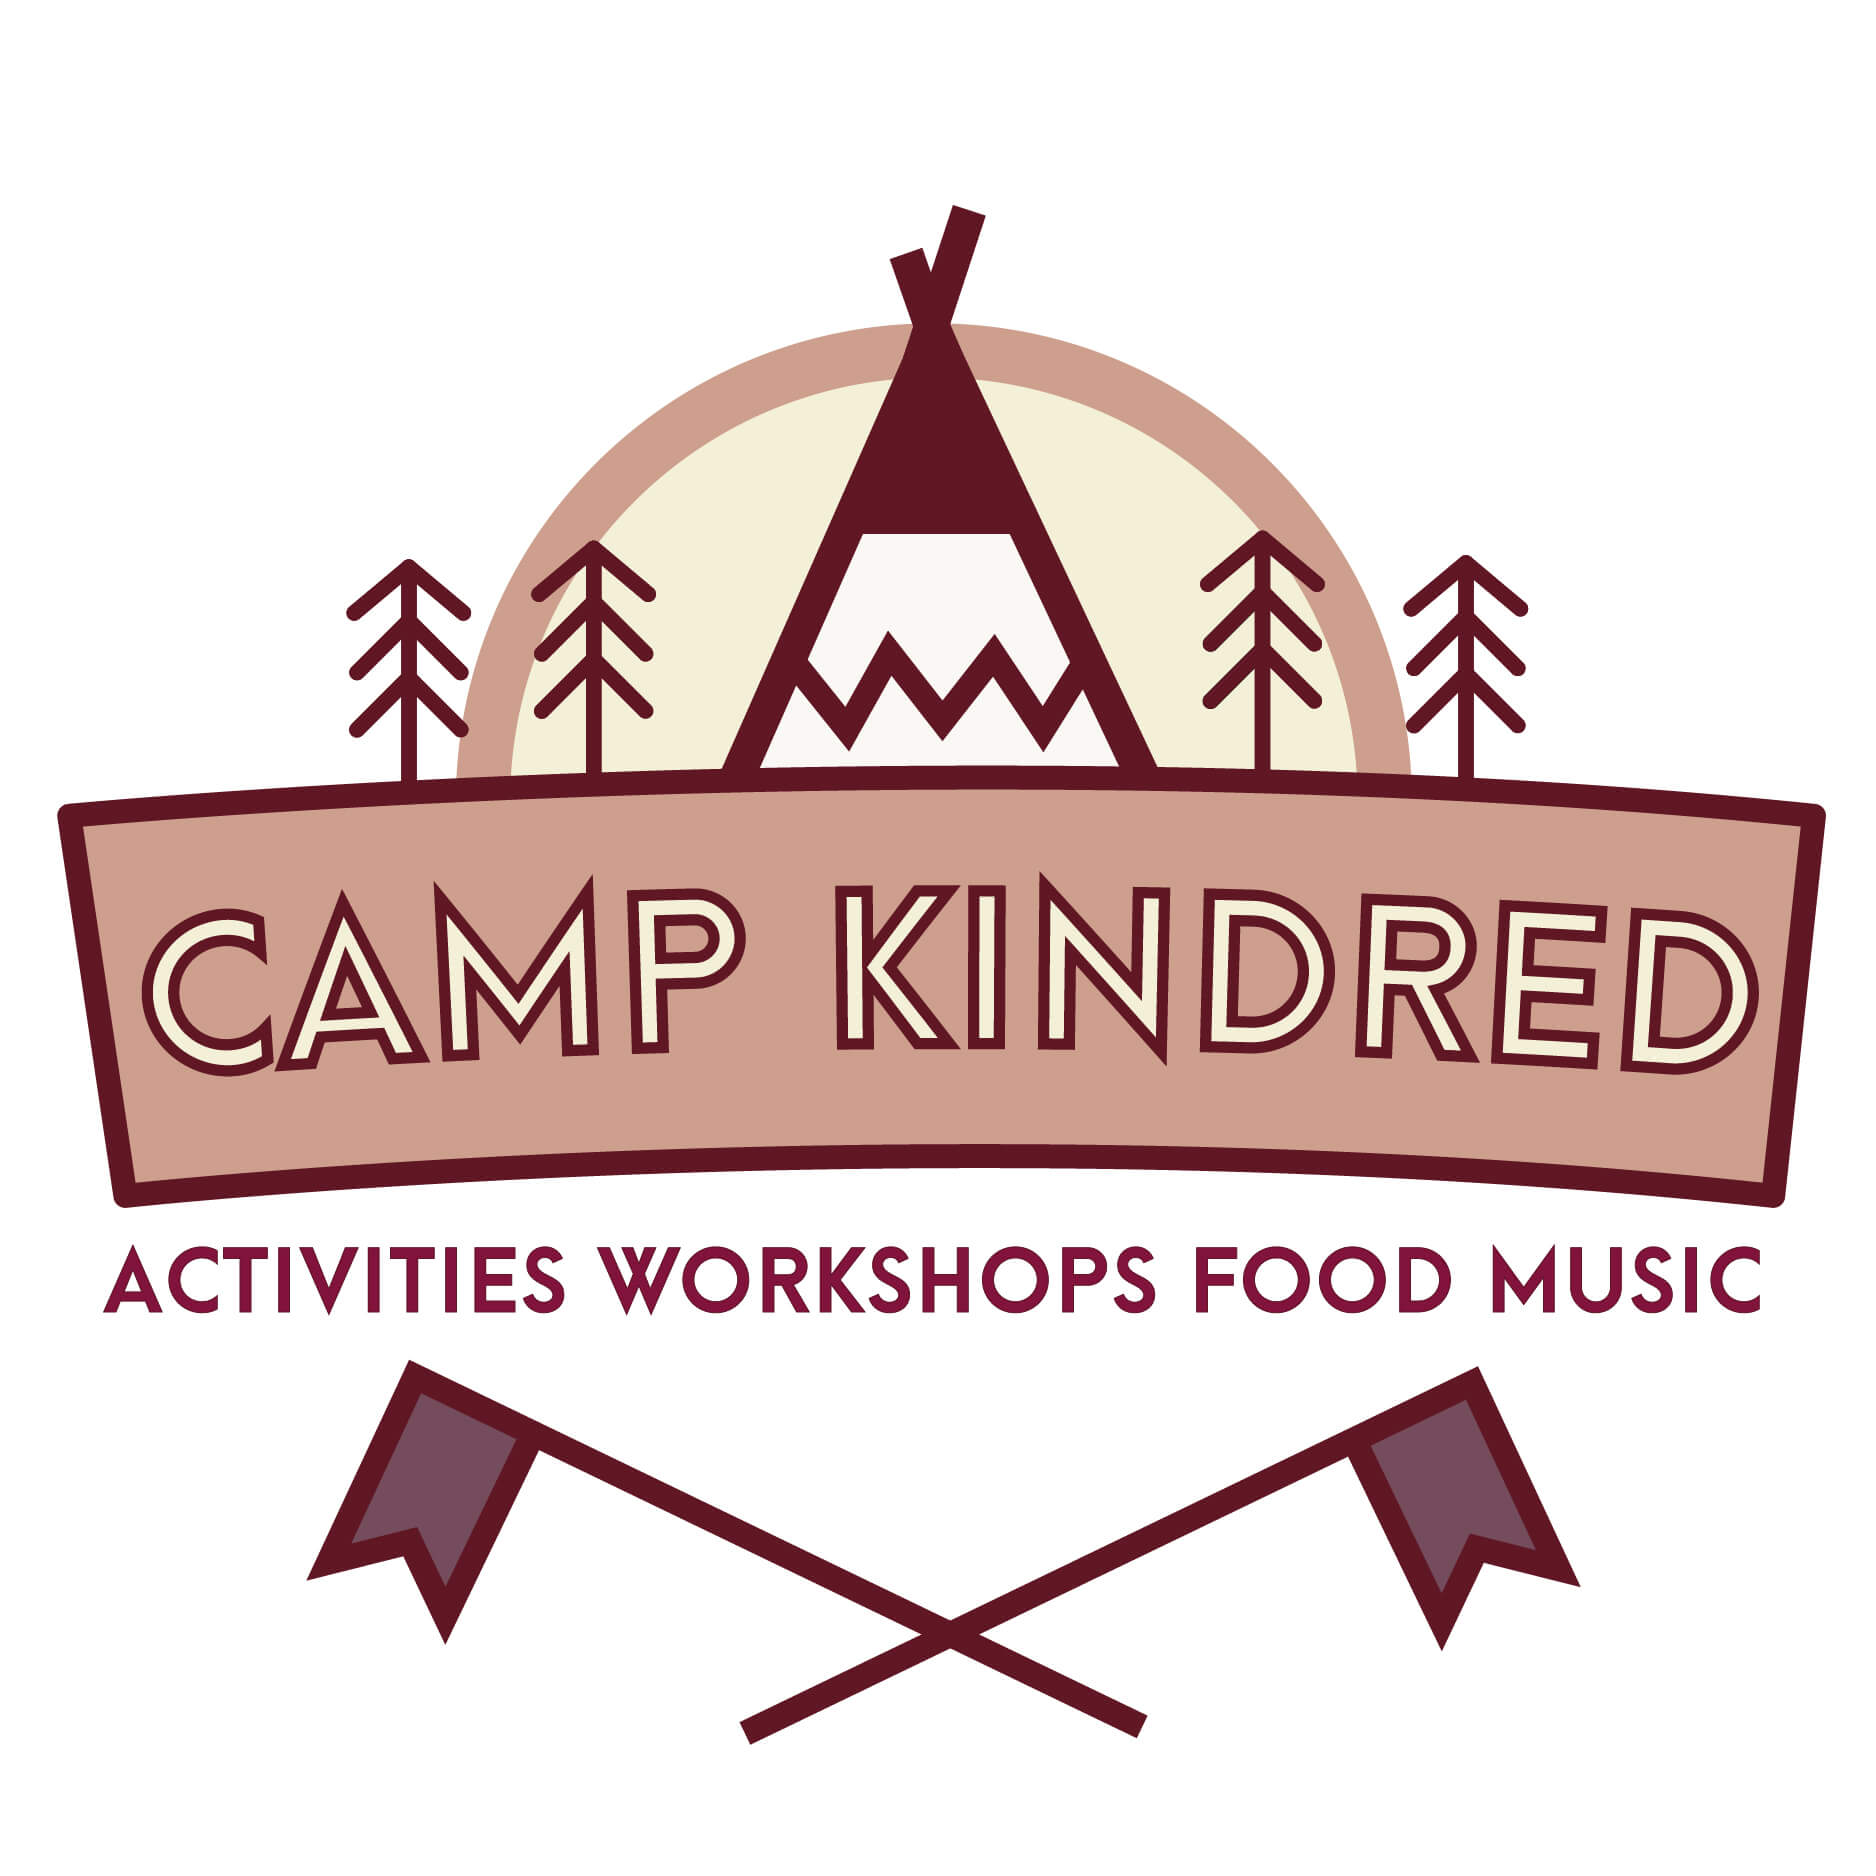 Camp Kindred Corporate Logo Plush Tents Glamping